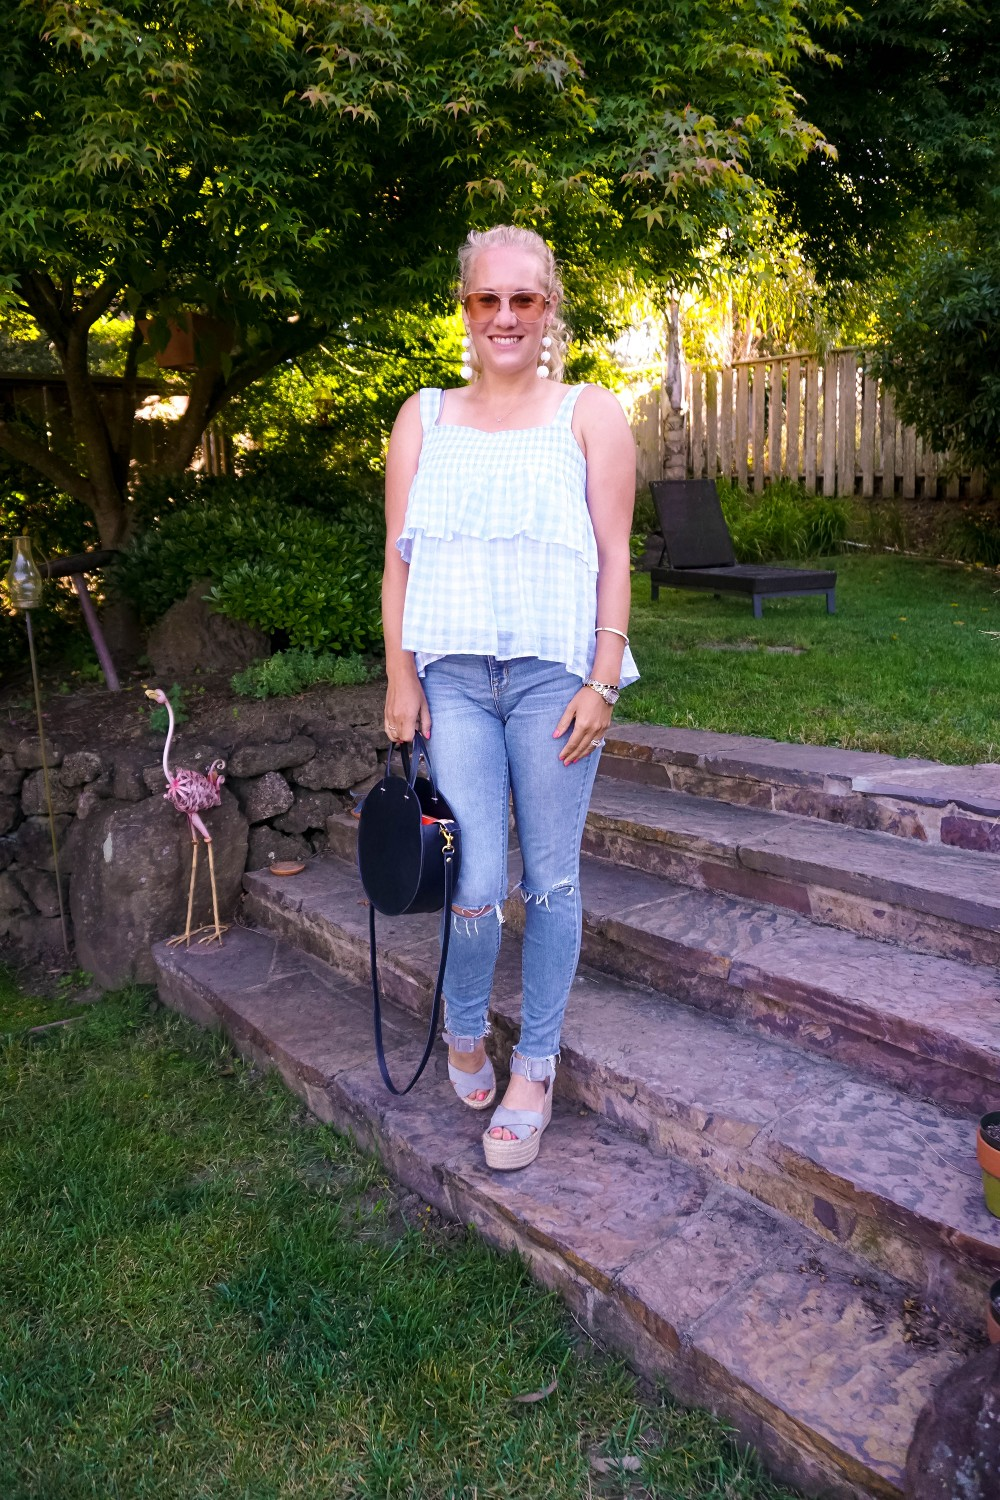 Pale Blue Gingham-Rebecca Minkoff Top-Gingham Top-Outfit Inspiration-Summer Style-Have Need Want 2